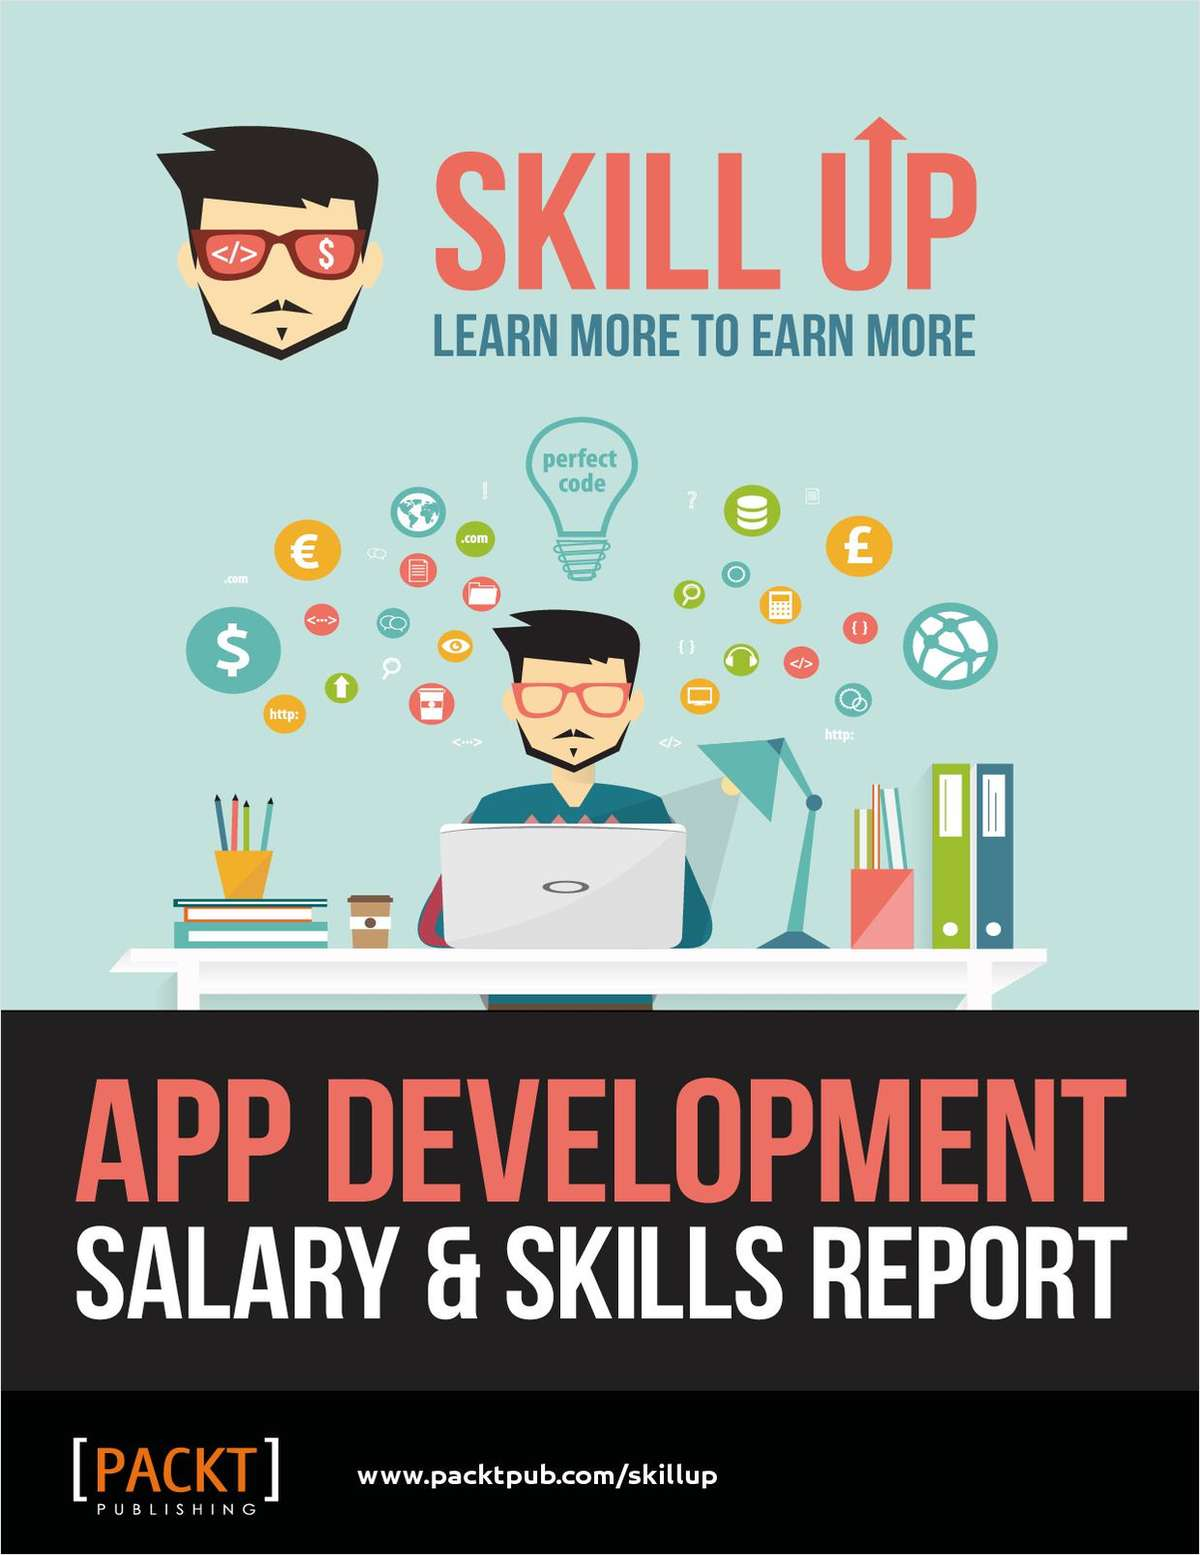 App Development - Salary & Skills Report